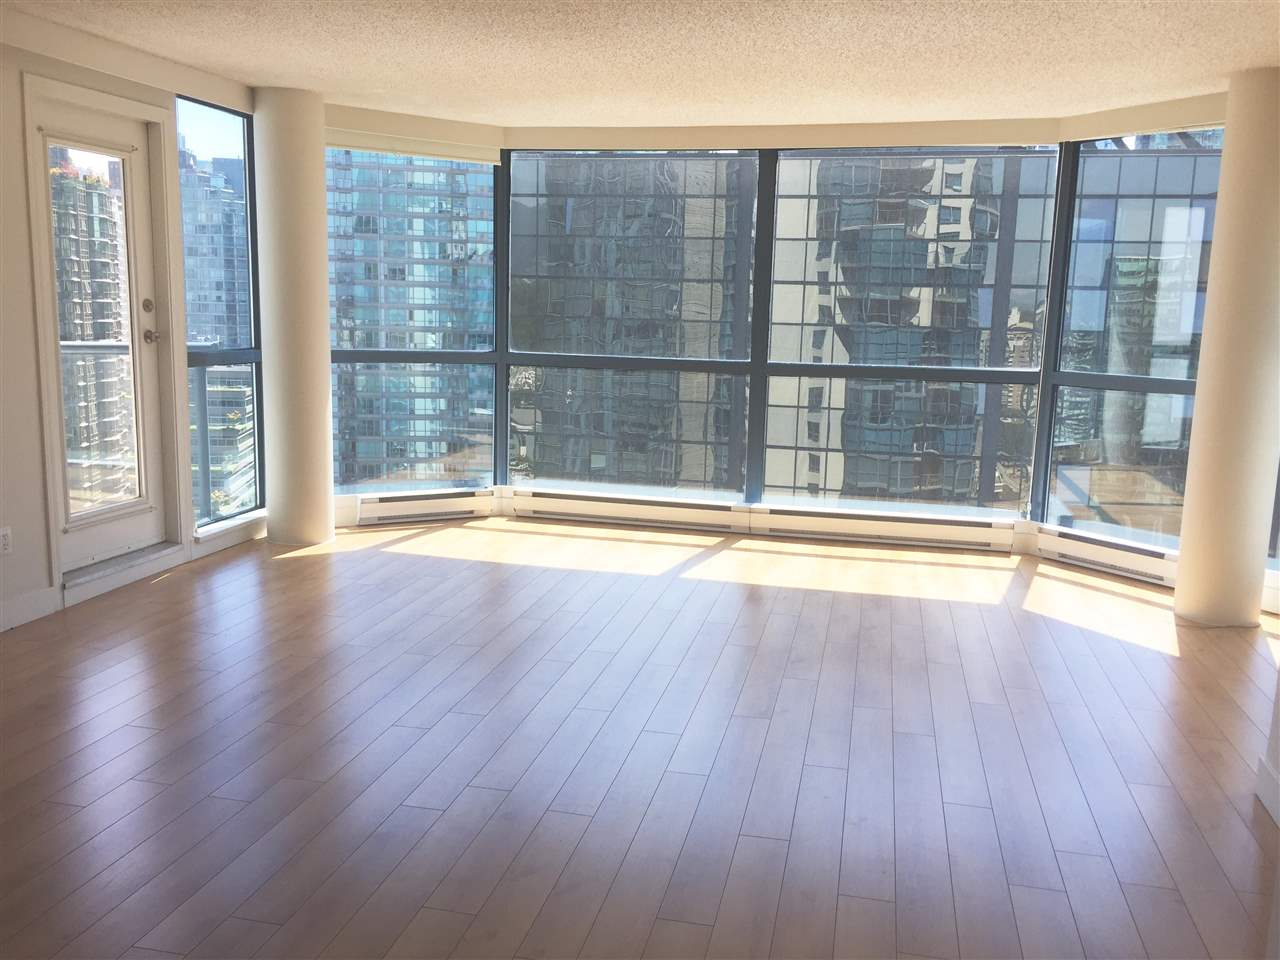 Condo Apartment at 1704 1415 W GEORGIA STREET, Unit 1704, Vancouver West, British Columbia. Image 4